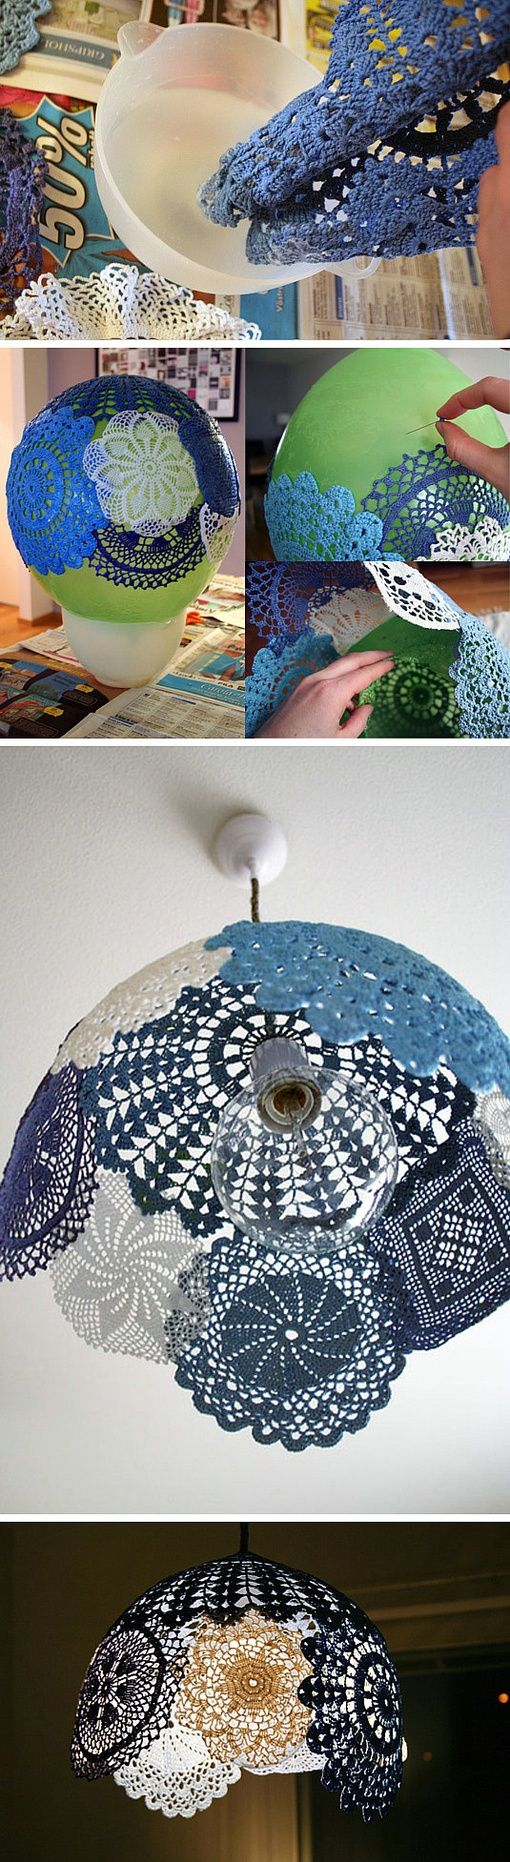 lamparas-diy-10-ideas-super-chic_5